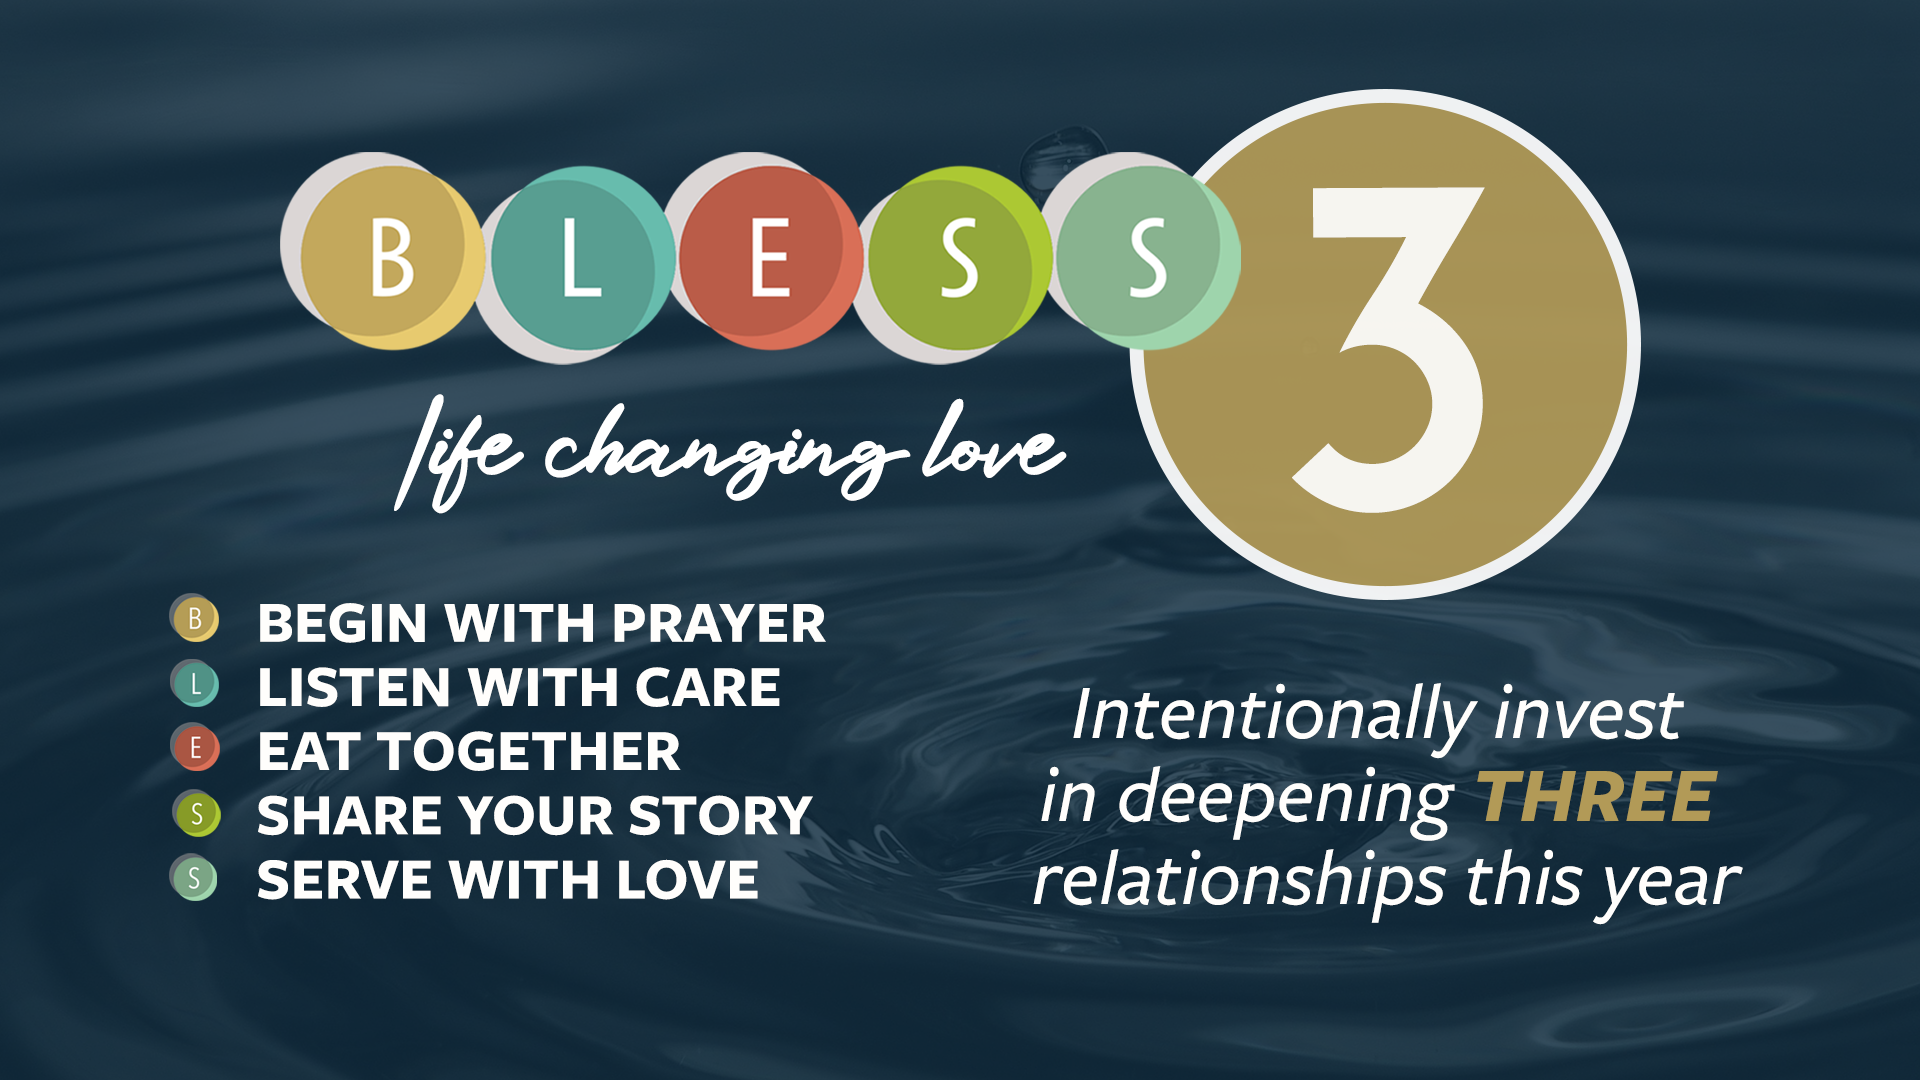 BLESS 3: Life-changing Love